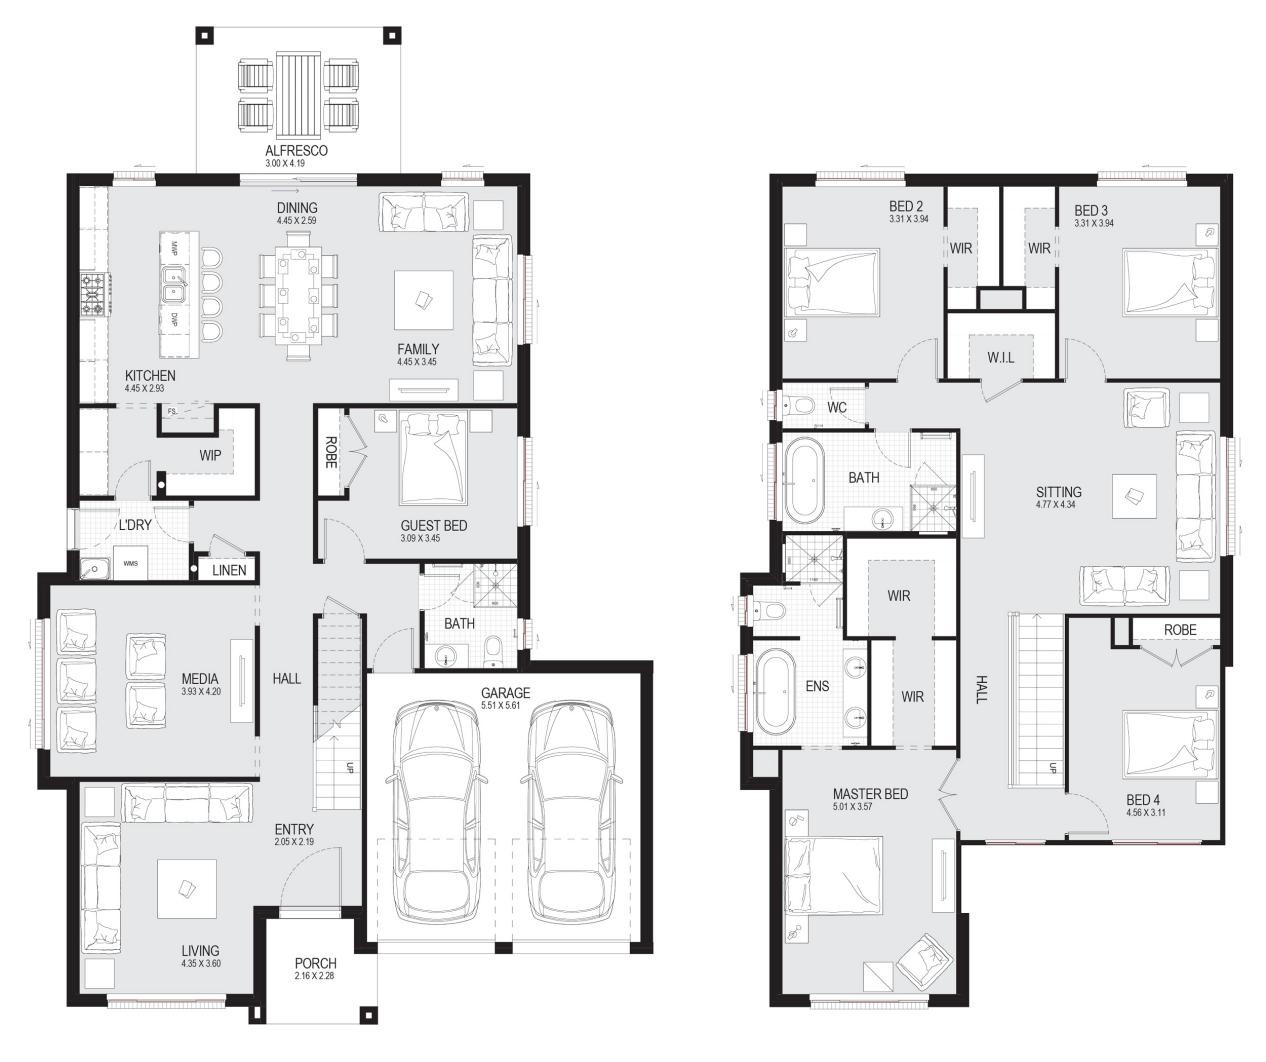 cost of duplex plan 2 - Cost of Building a Duplex in 2020 [with Pictures] - AYNTK